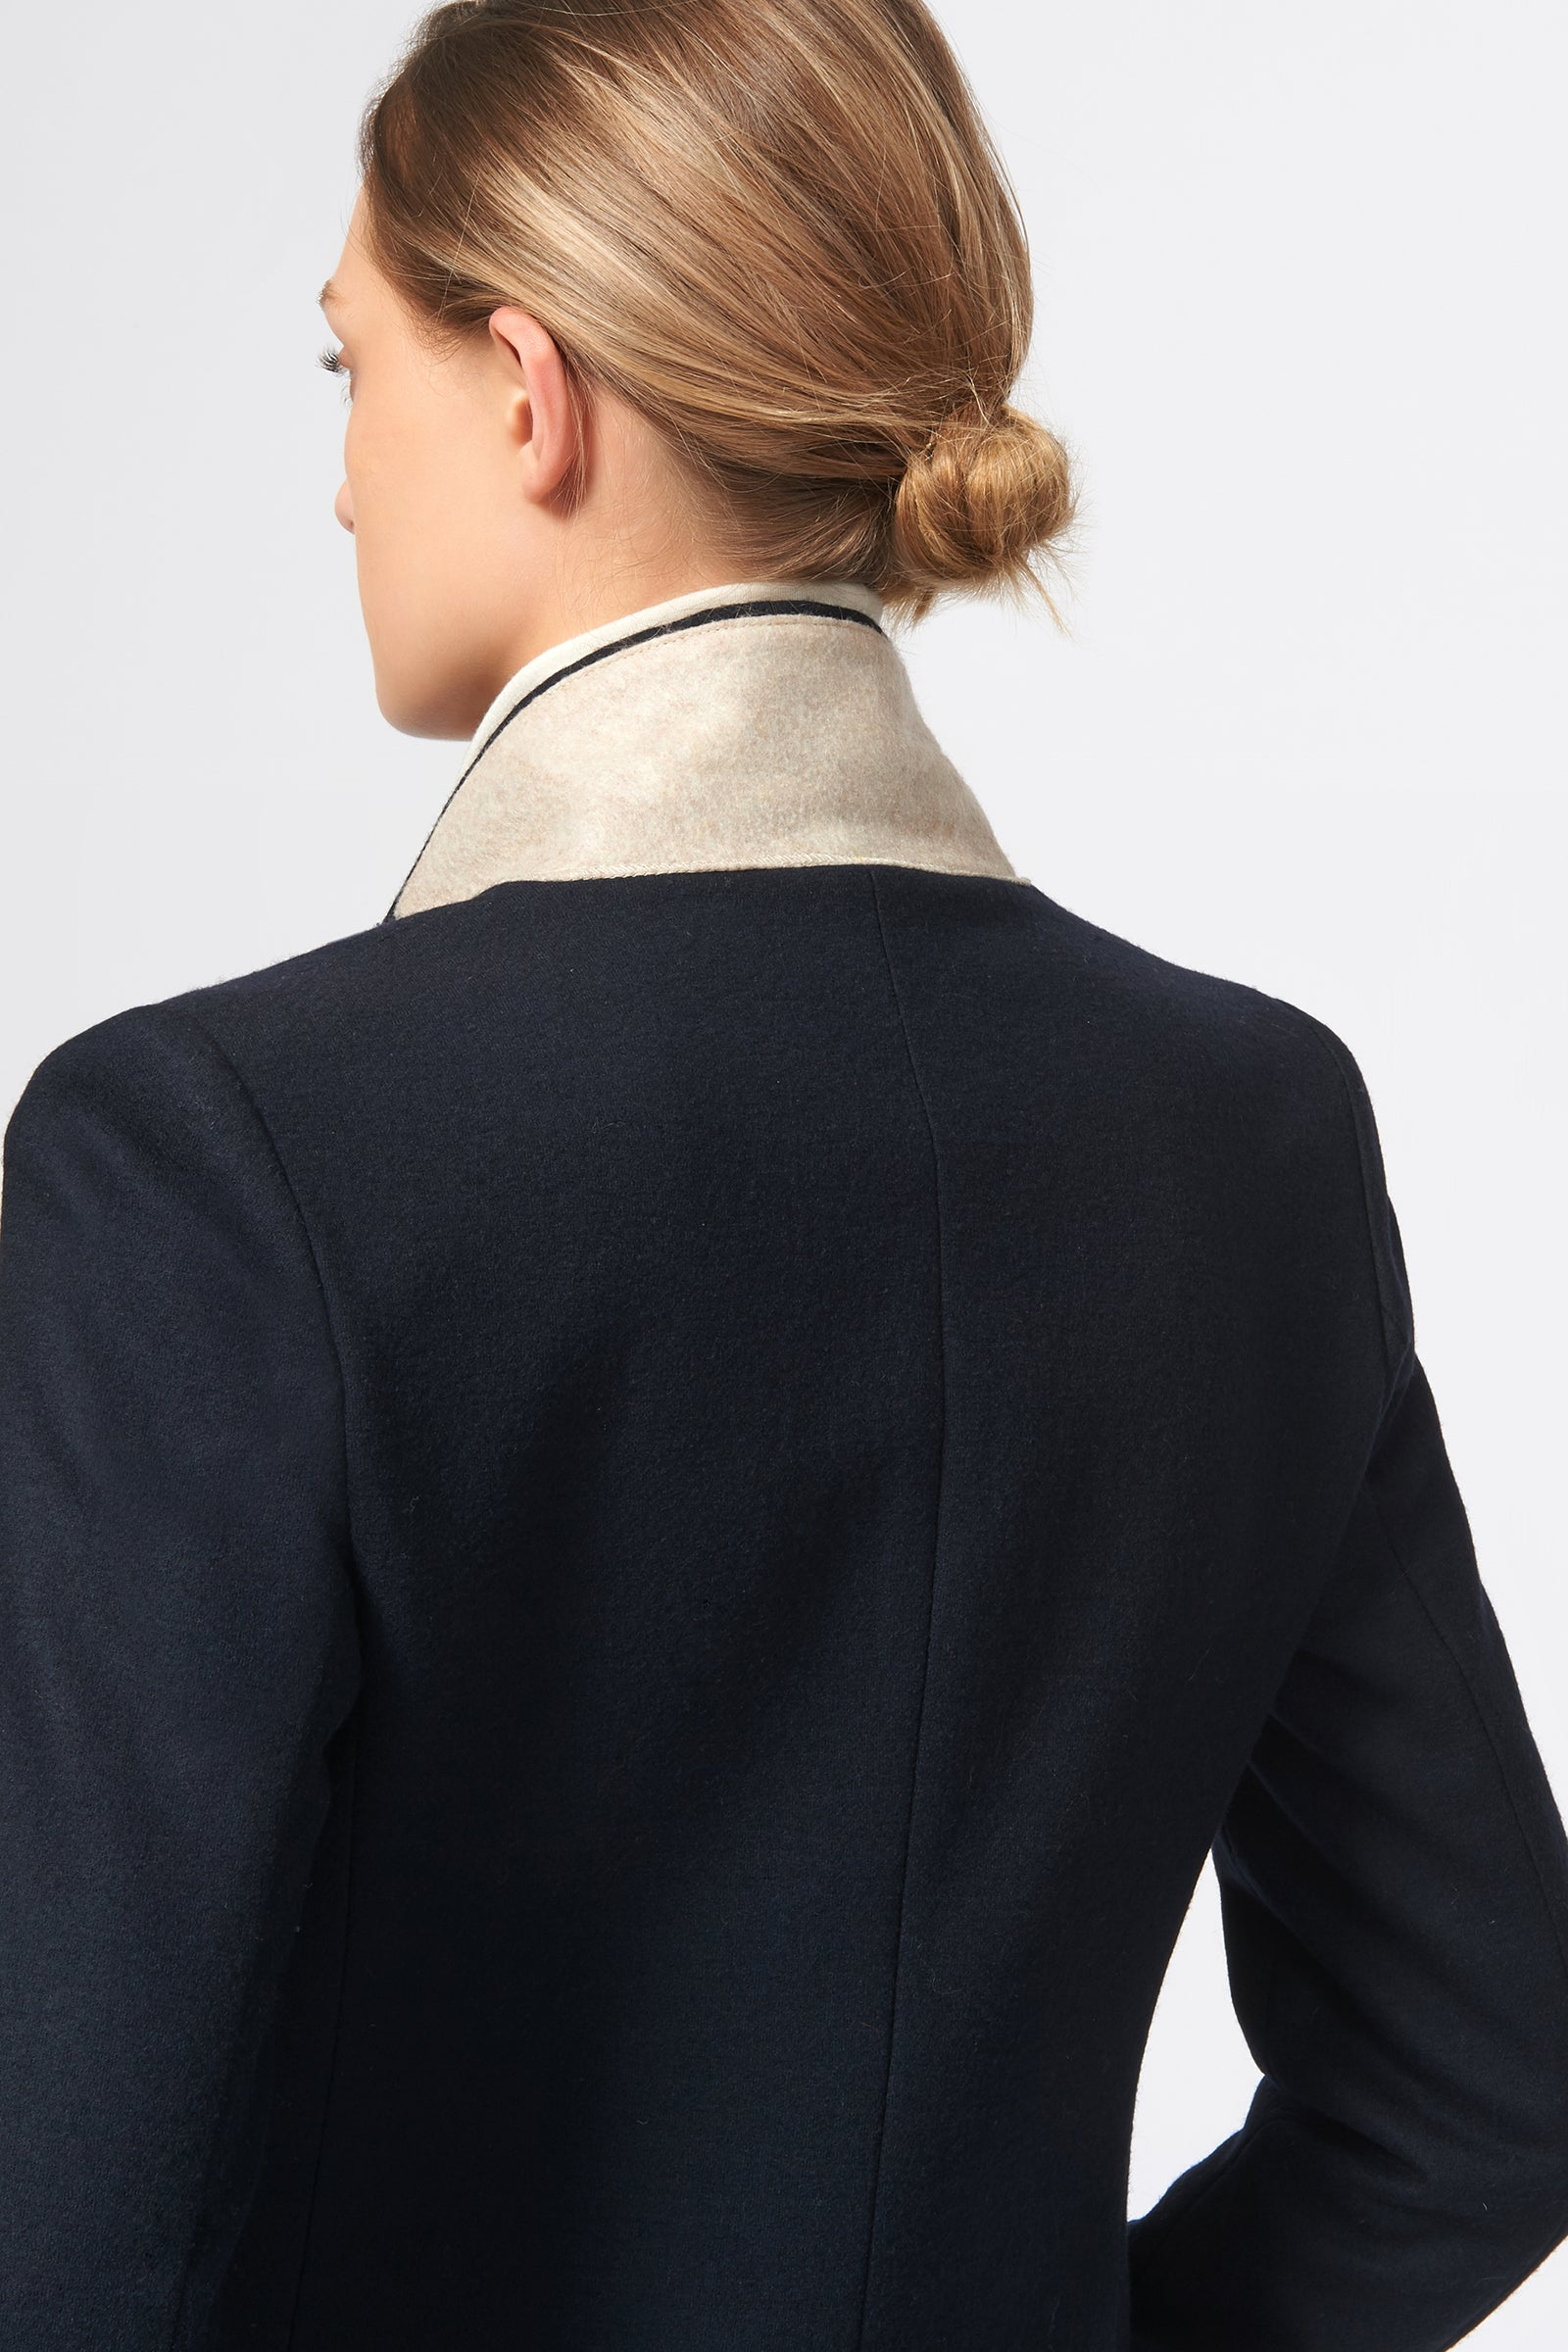 Kal Rieman Tailored Tux Blazer in Felted Jersey in Midnight on Model Back View